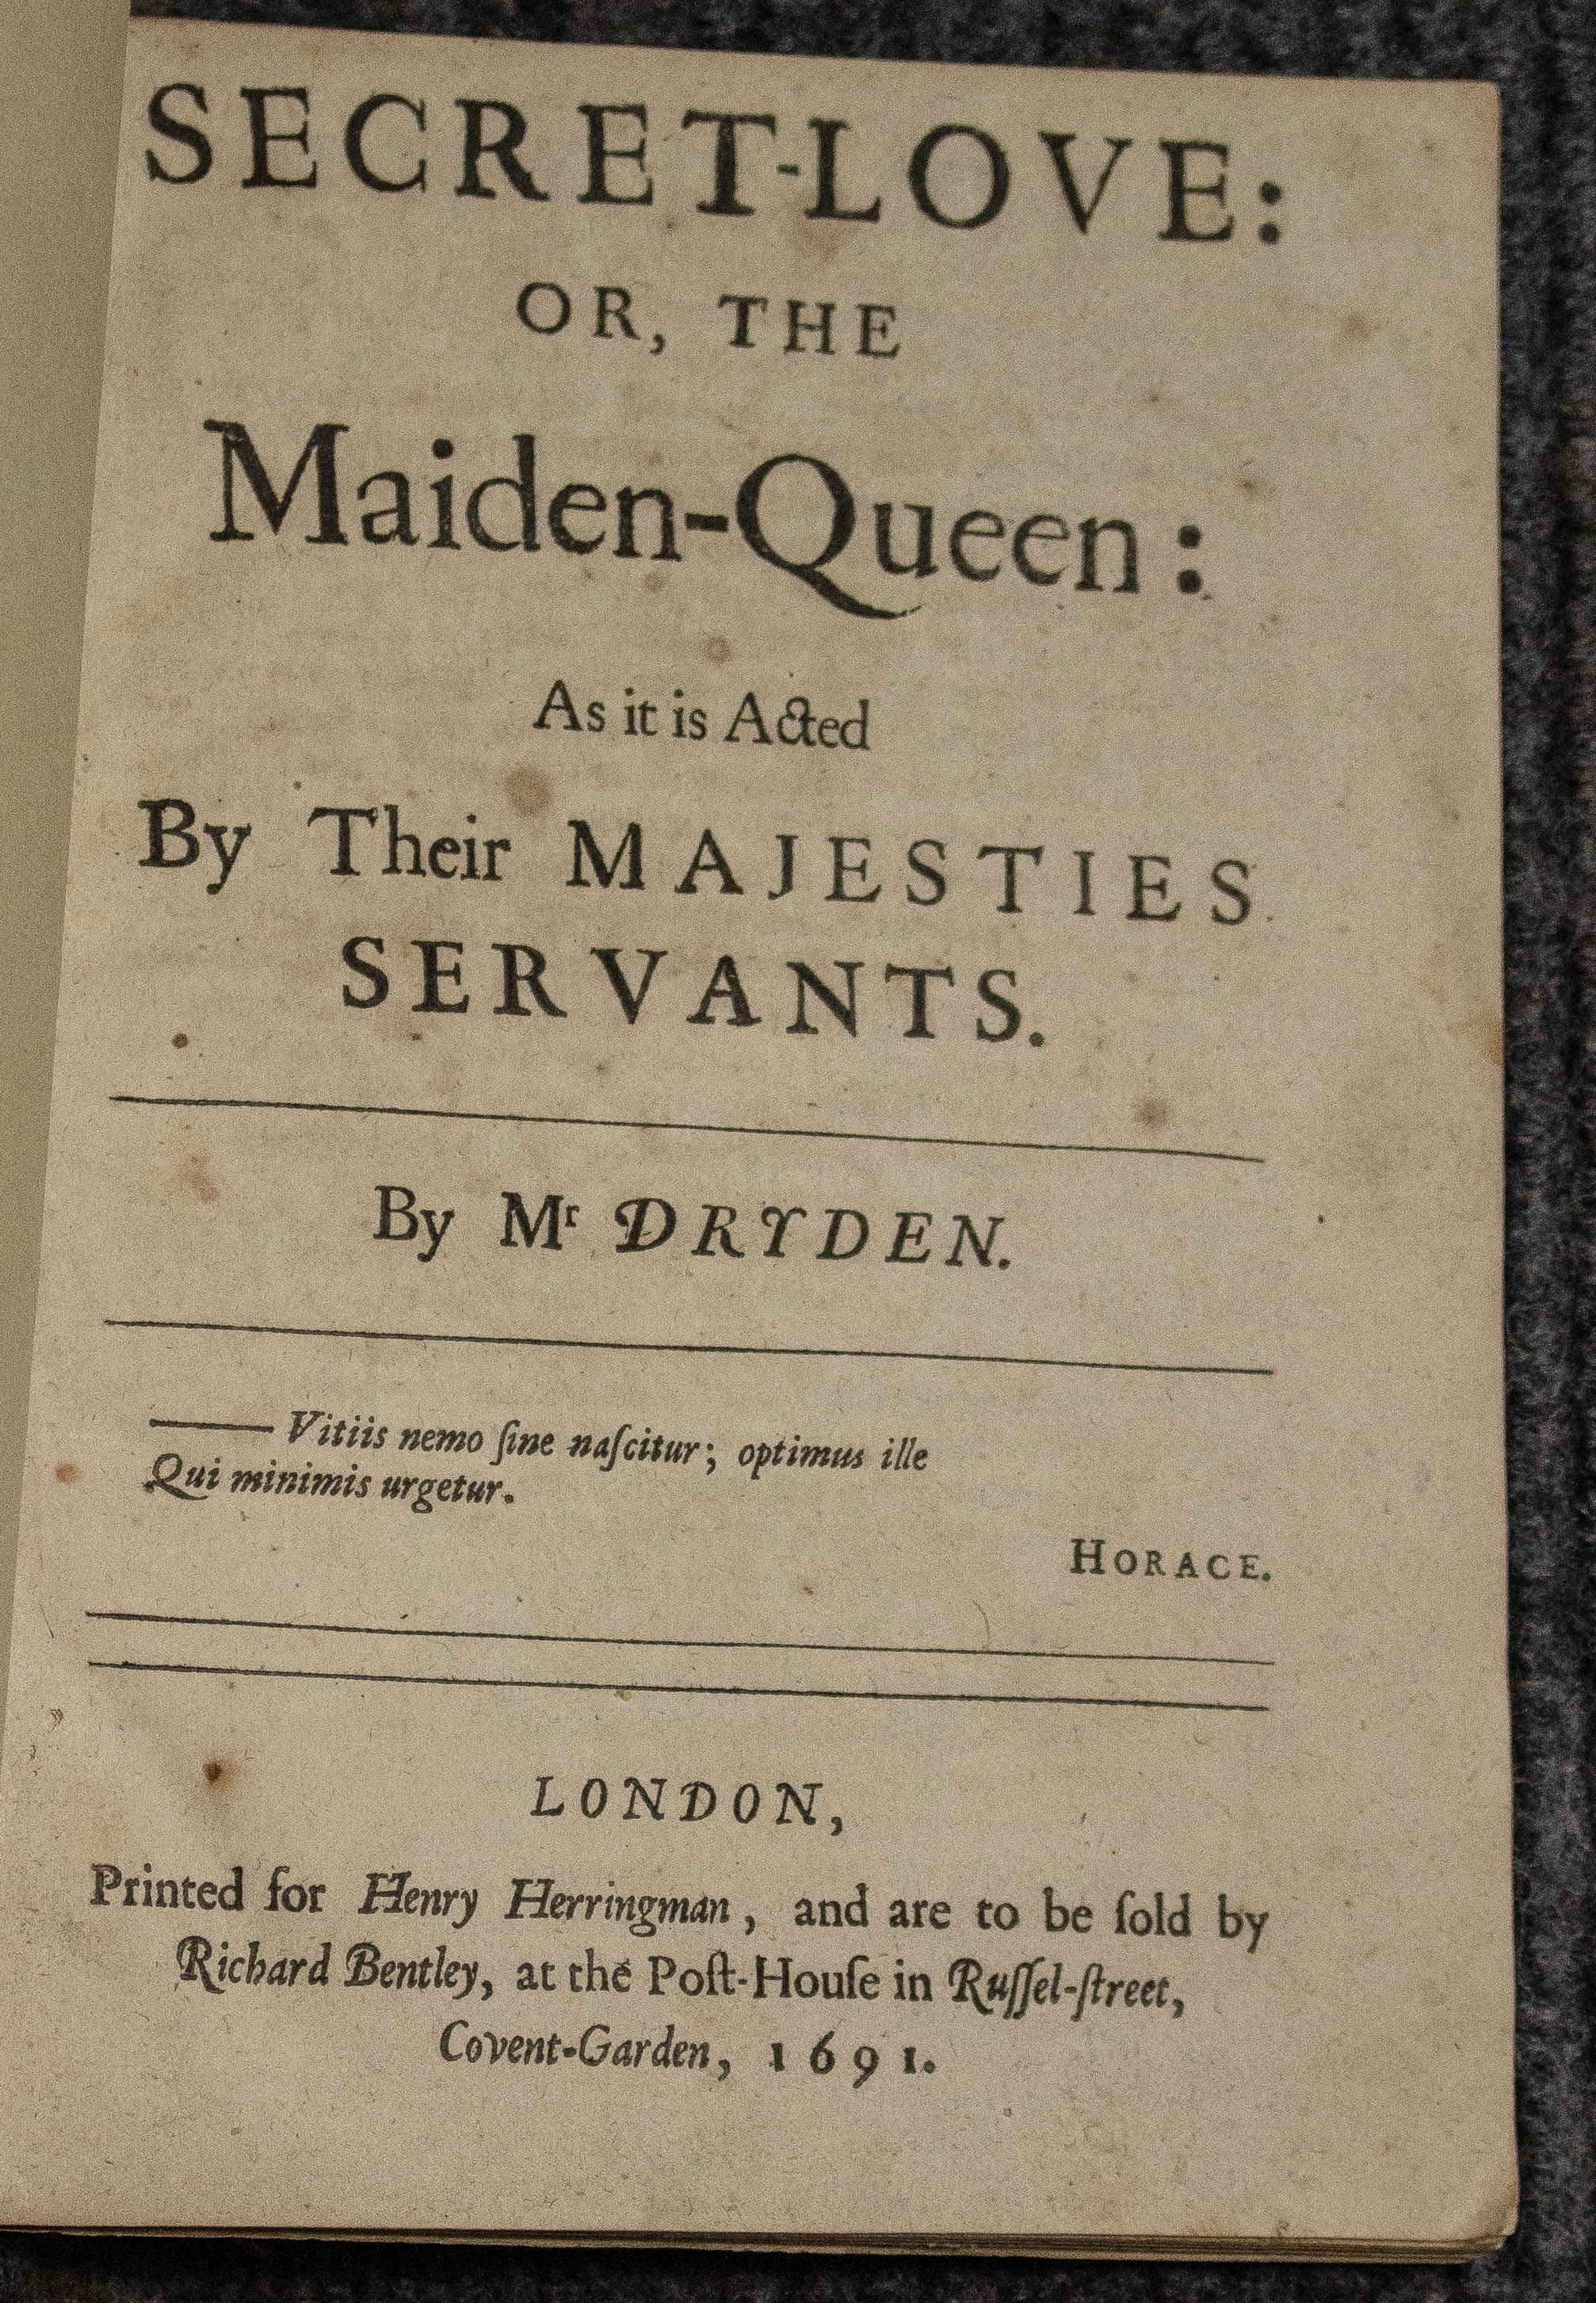 Image for Secret-love: Or, The Maiden-queen. 1691.